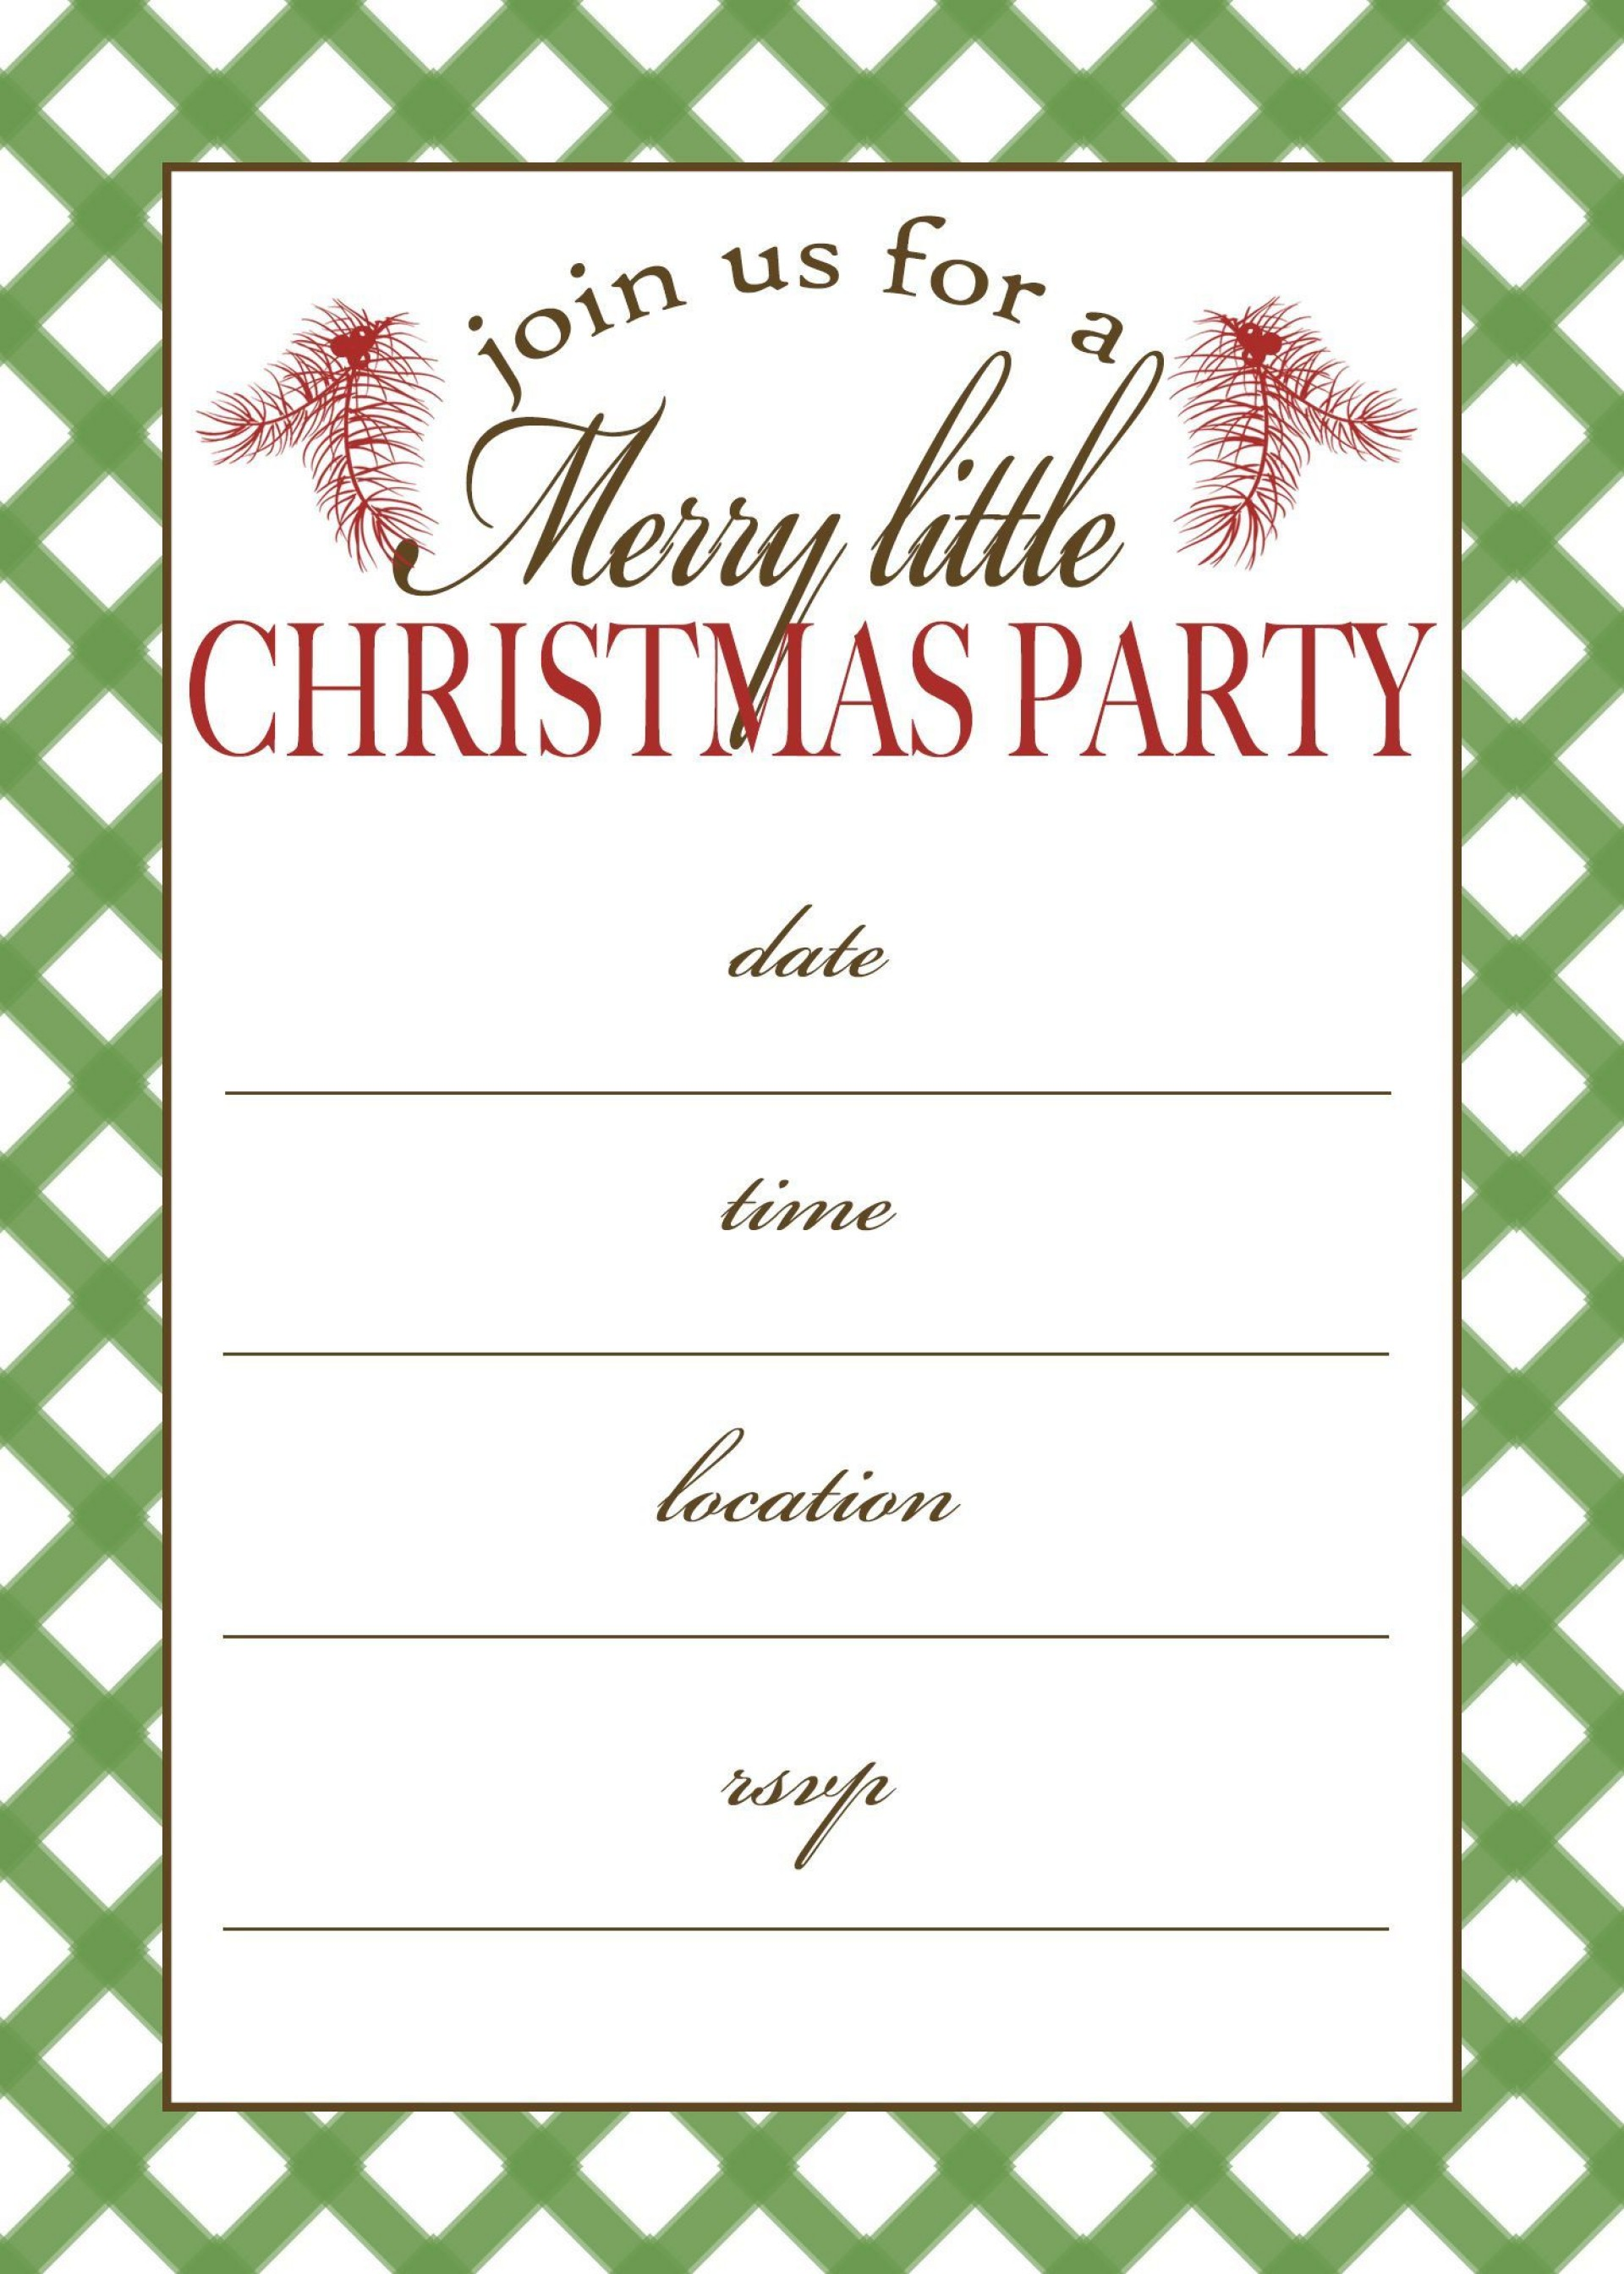 002 Fascinating Free Holiday Party Invitation Template For Word Photo 1920